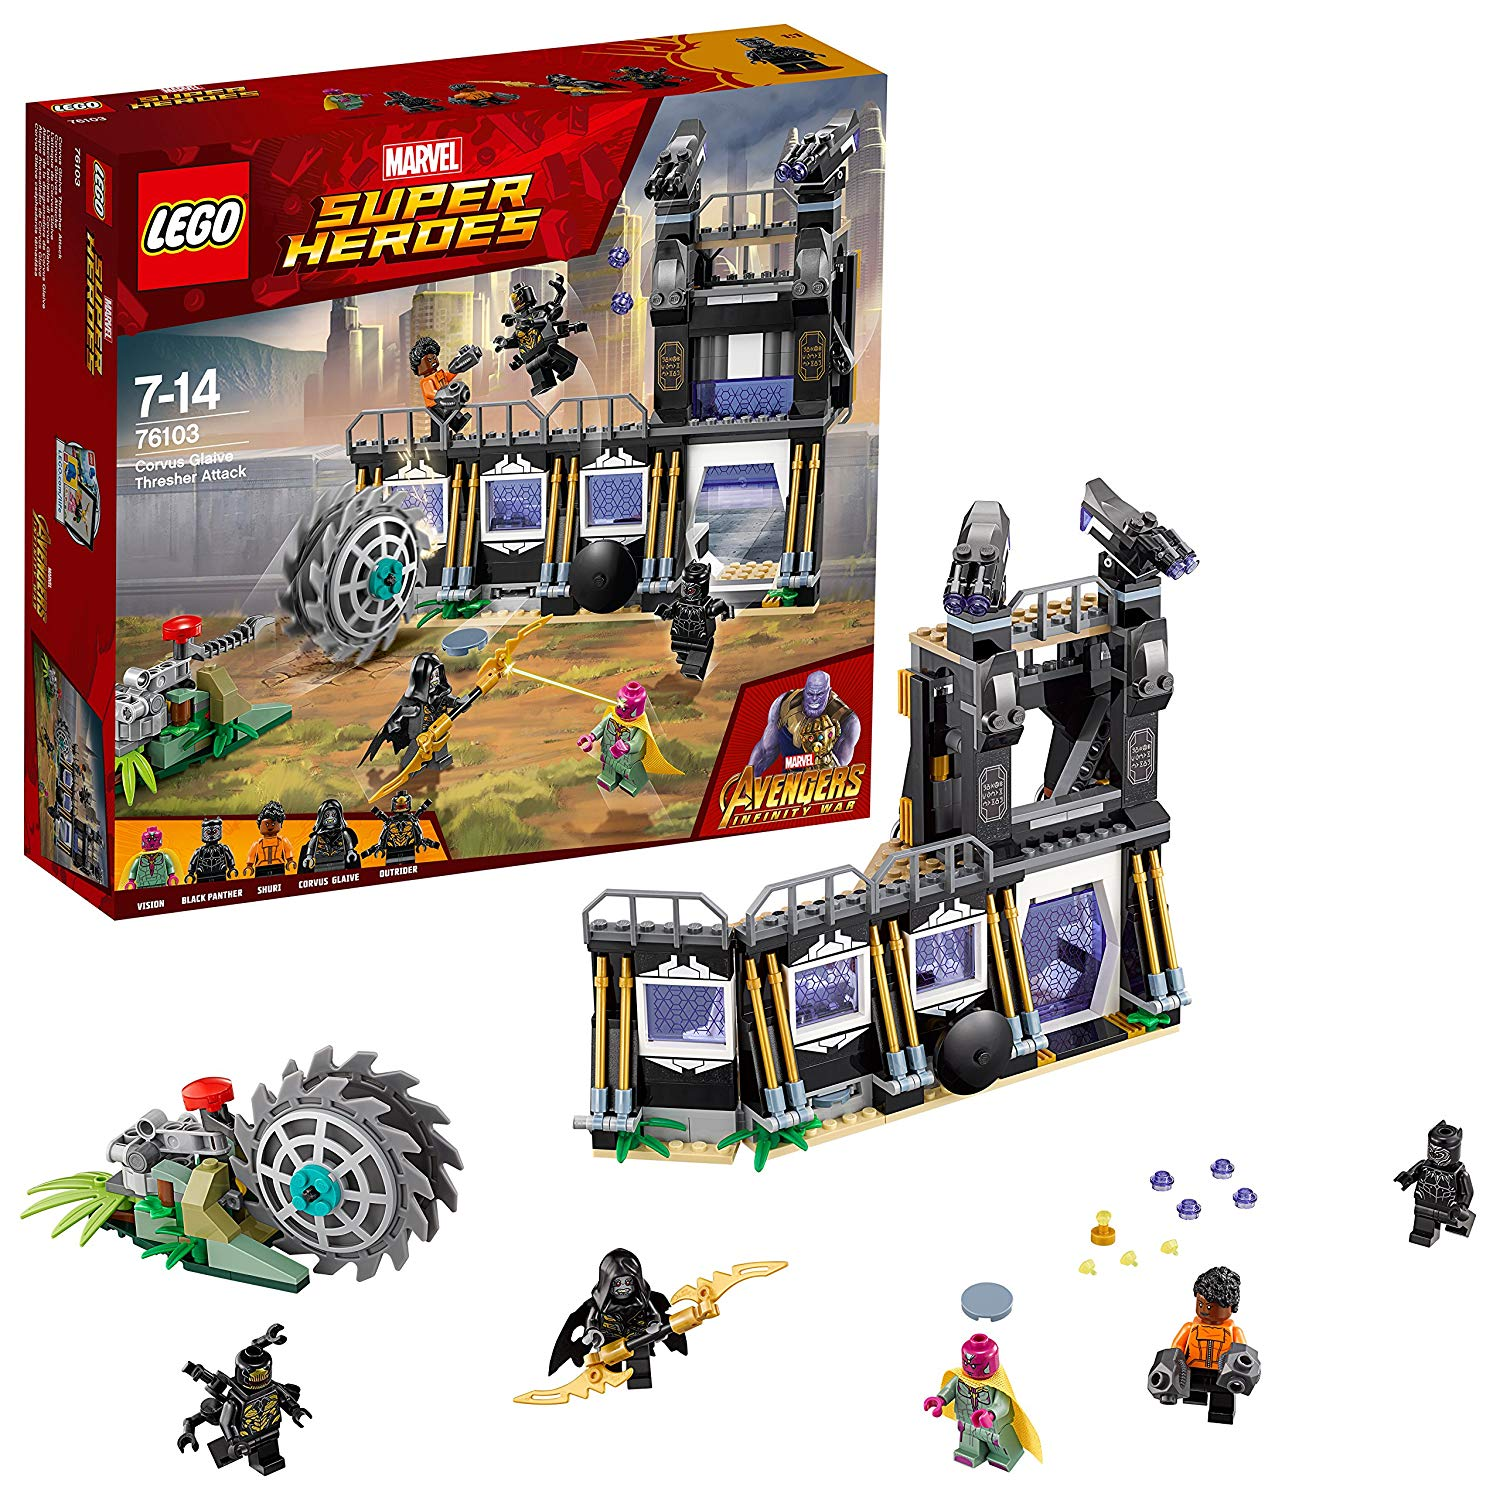 Lego sets with infinity stones: Corvus Glaive Thresher Attack Set